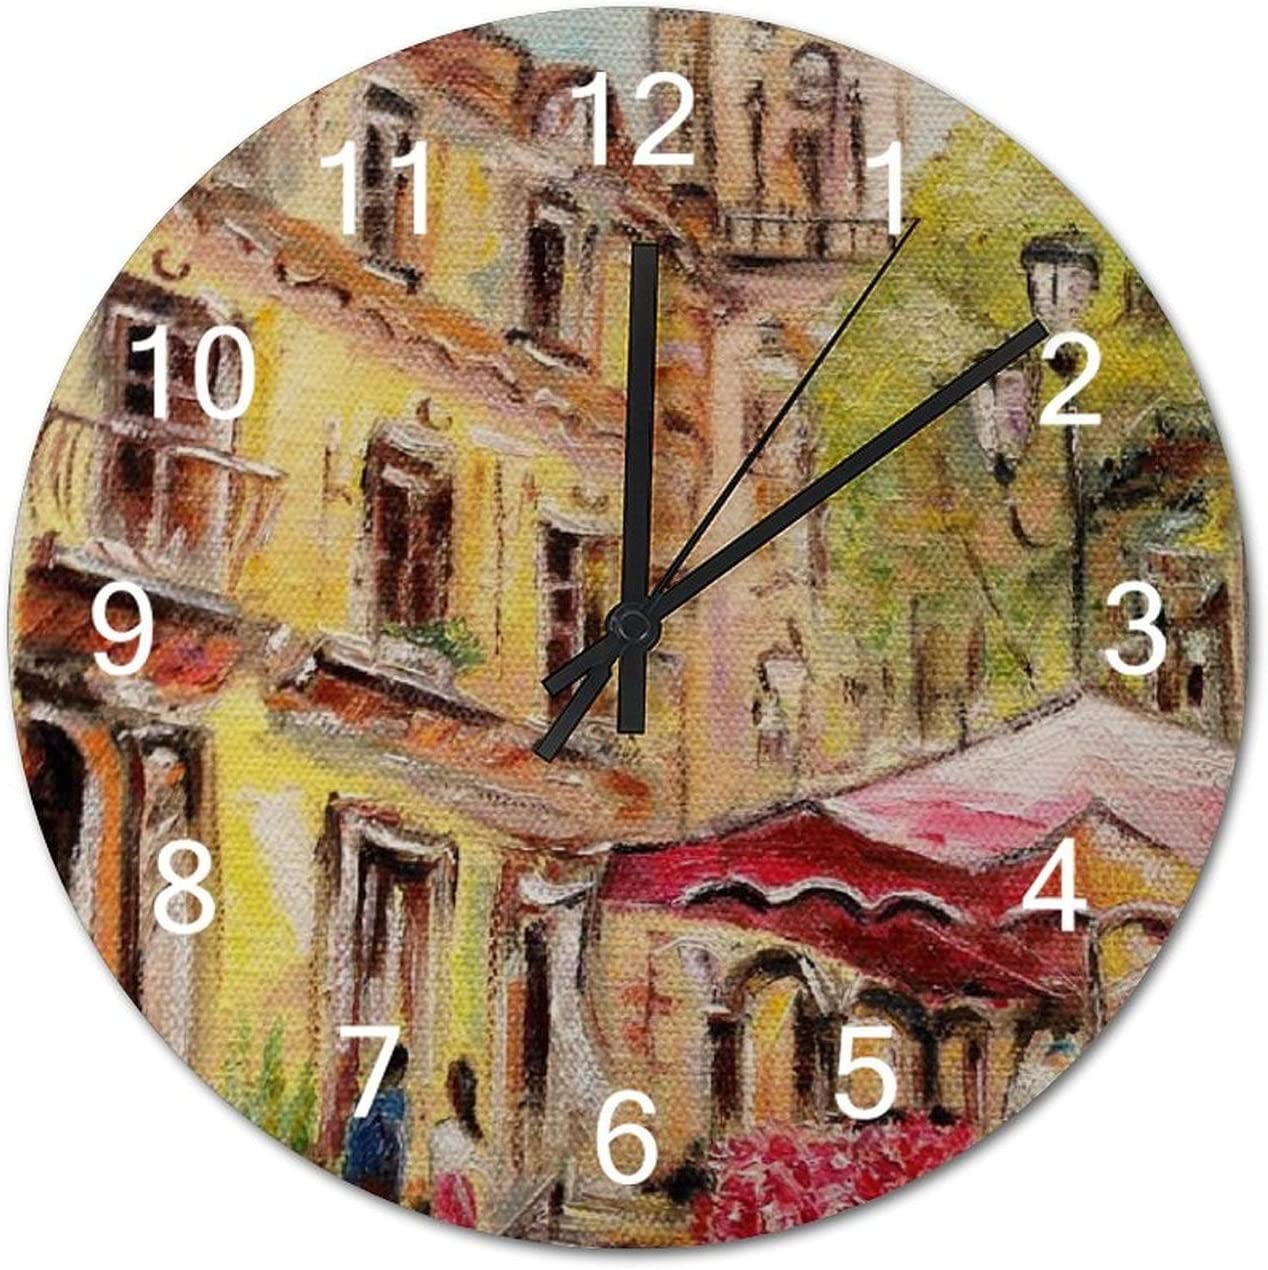 Oil Painting Marche Aux Fleurs Battery Operated Non Ticking Silent Art Wall Clock Desk Clock Decor 12x12 Inch